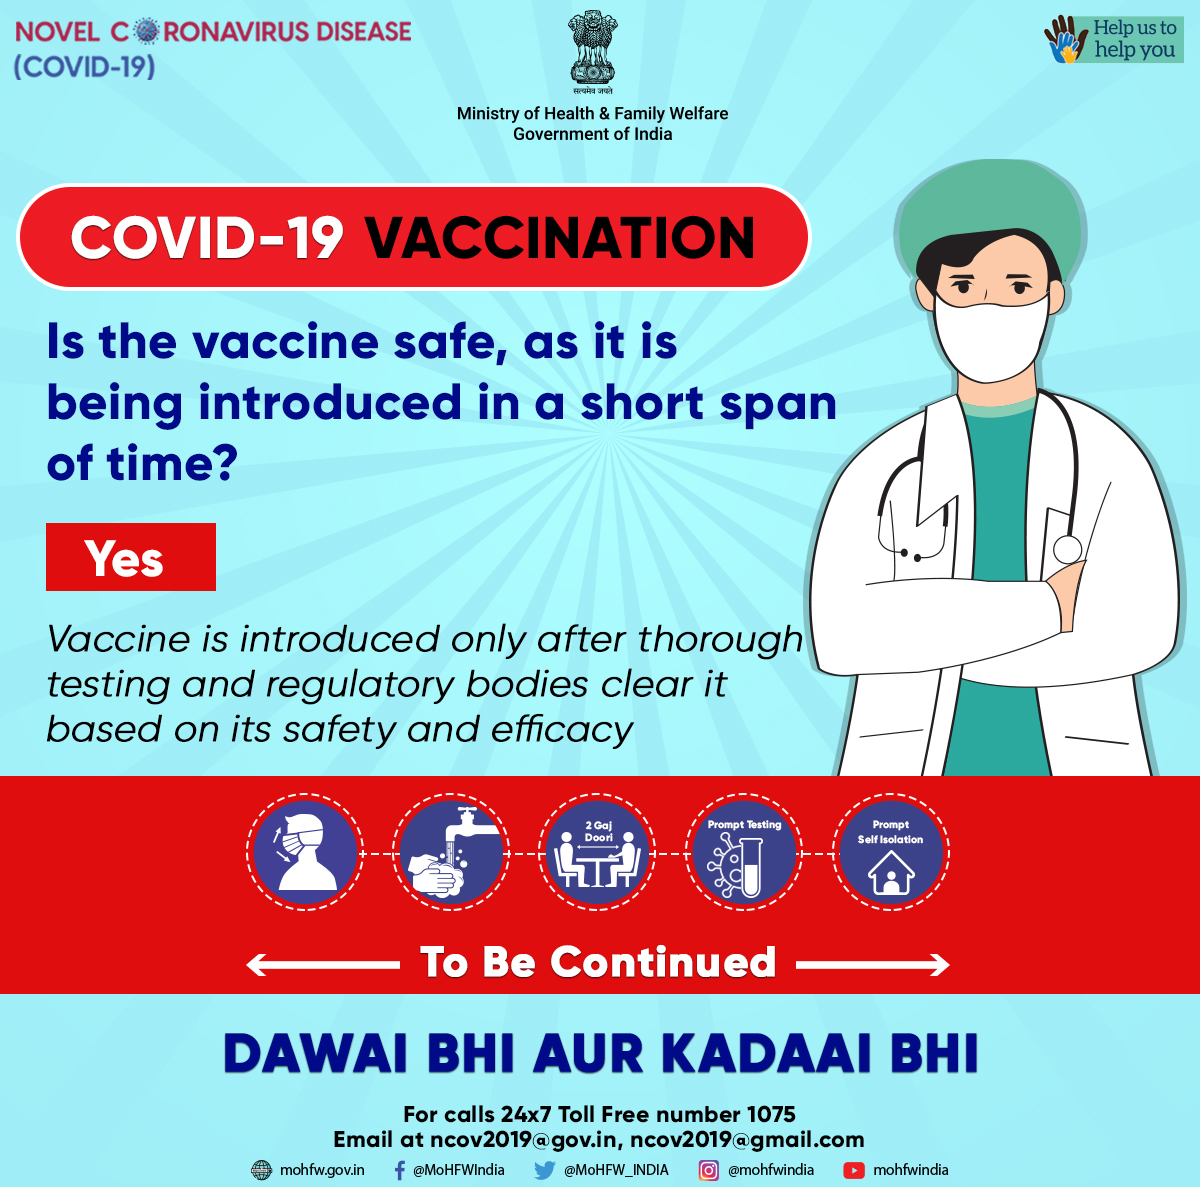 #Vaccines are safe and help prevent millions of deaths every year.   #COVID19Vaccine provides immunity against the disease and reduces the risk of contracting infection.  #LargestVaccineDrive #TogetherAgainstCovid19